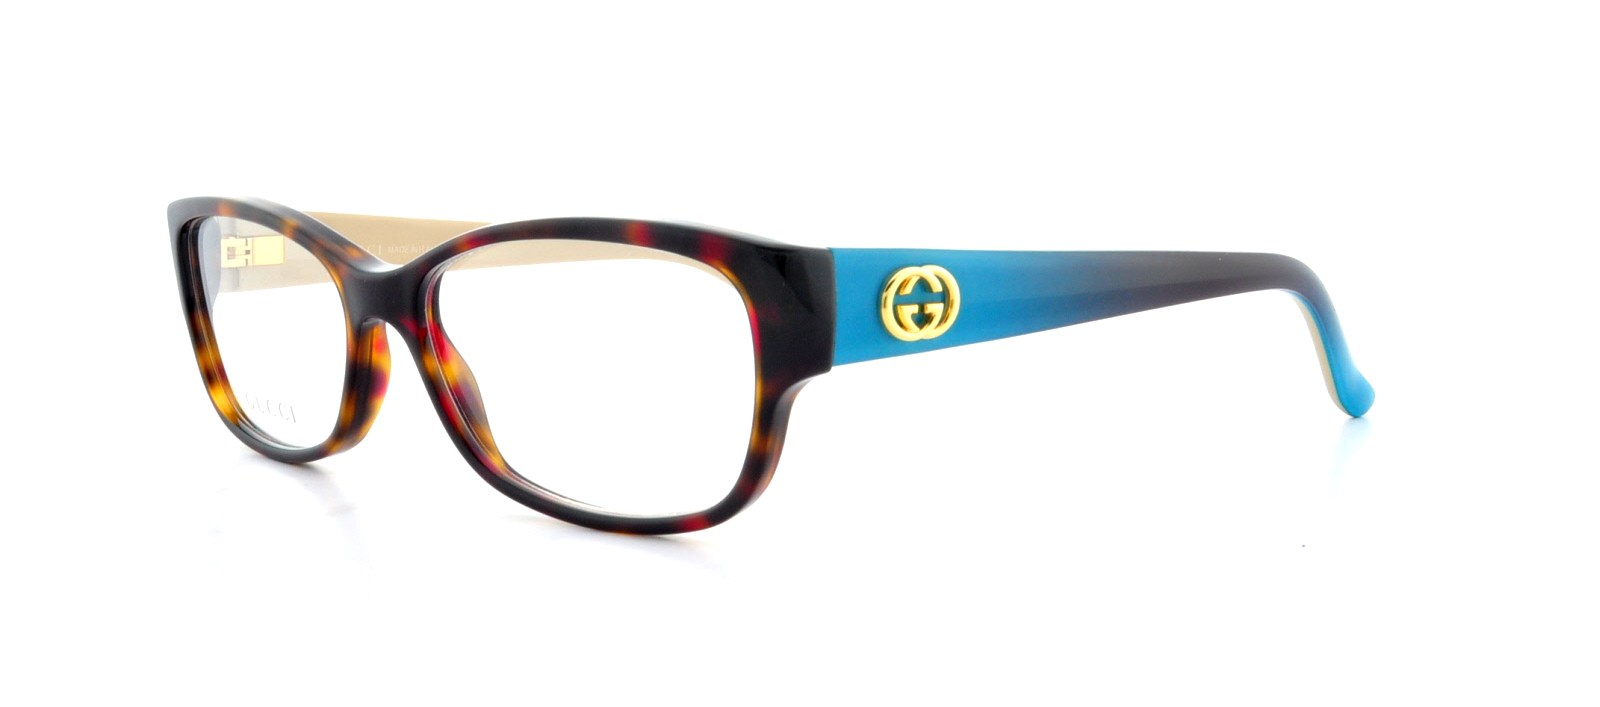 Designer Frames Outlet Gucci - Free cleaning invoice template gucci outlet store online